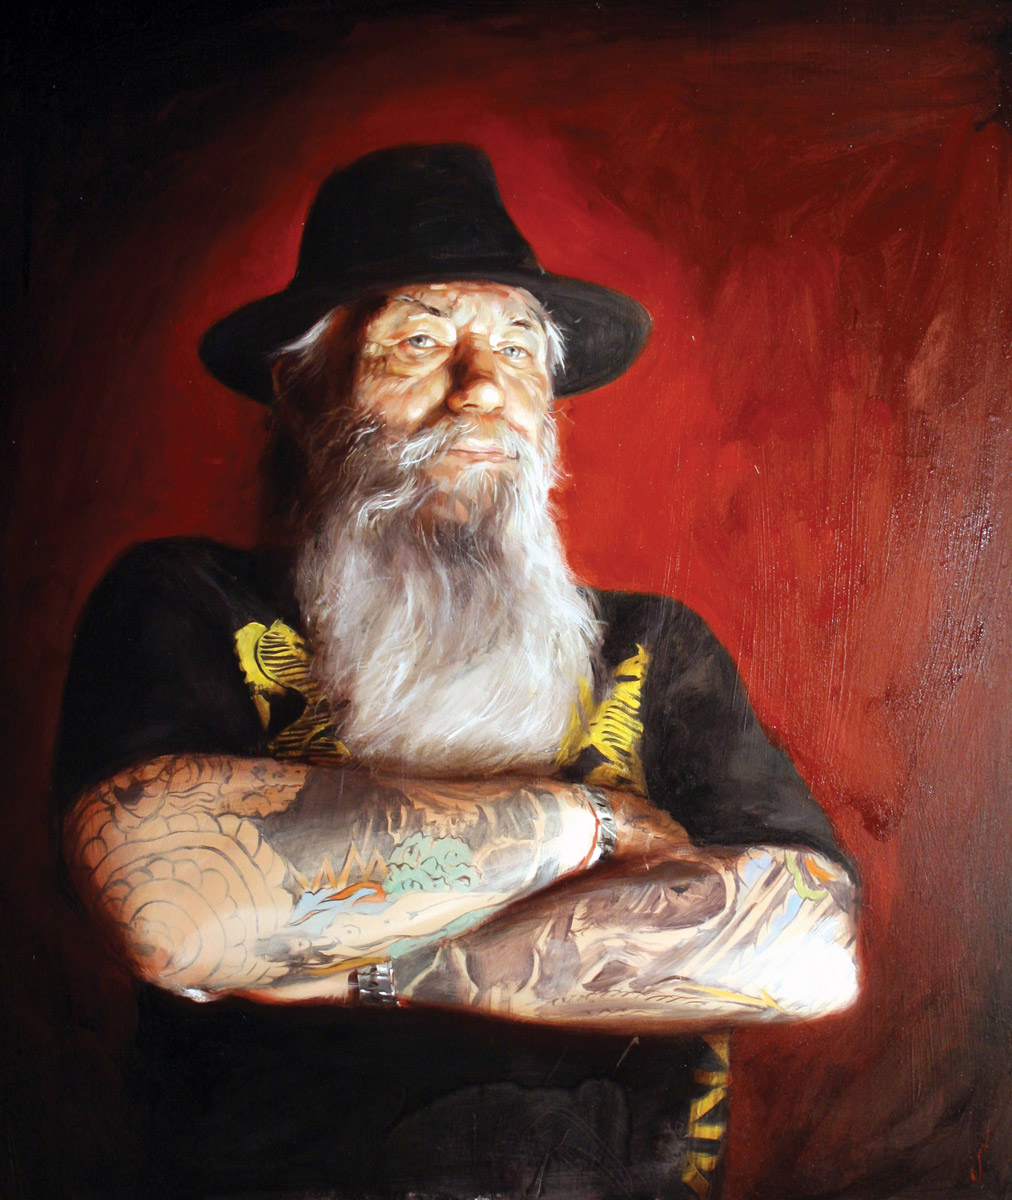 "'Portrait of the Artist, Rick Walters', oil on panel, 32"" x 24"", 2007, Collection of Rick Walters"